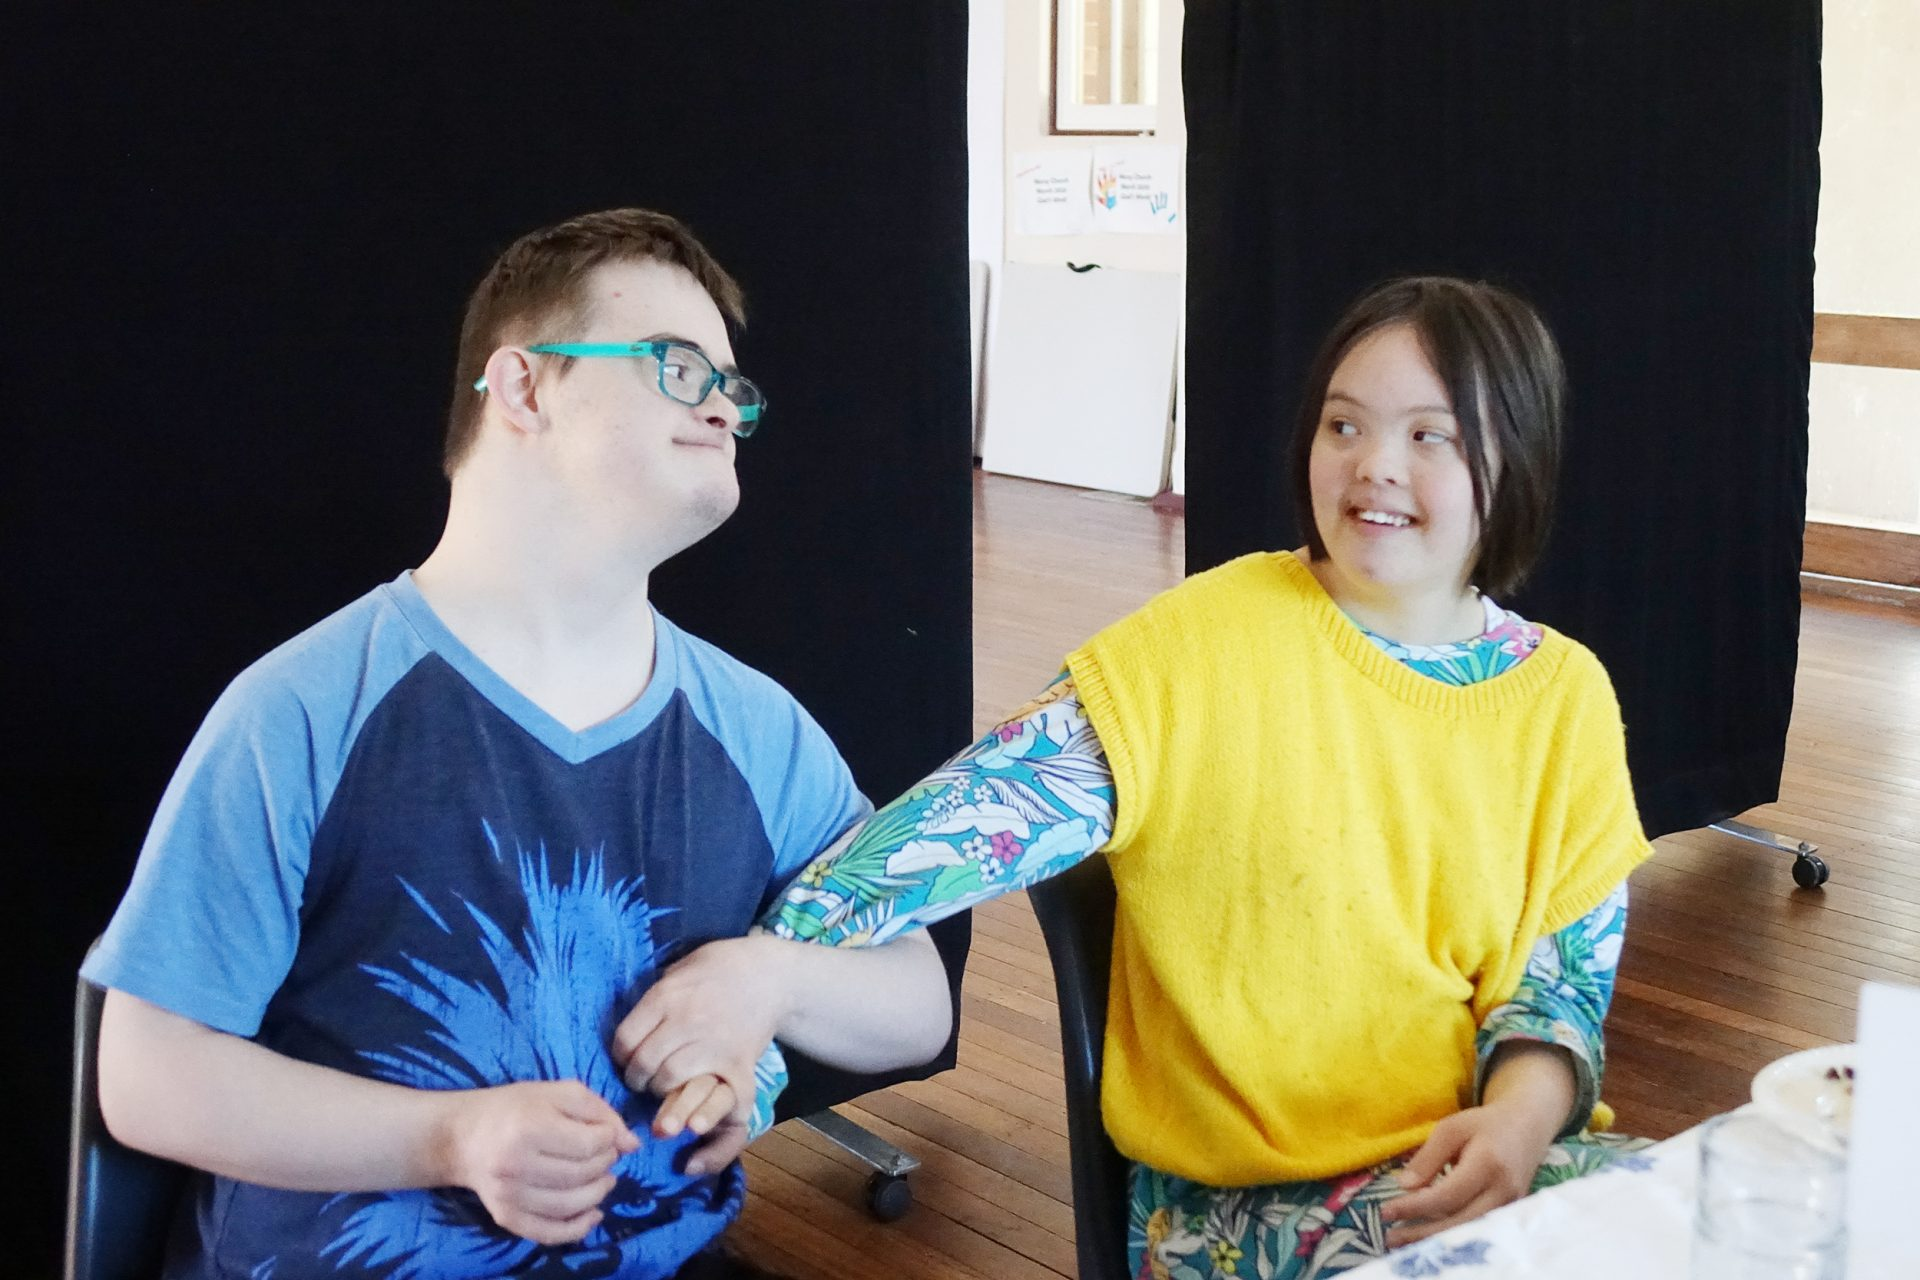 A young man in a blue shirt wearing glasses looks and smiles at a young woman on the right, who is wearing a yellow jumper and smiling. They are holding hands.